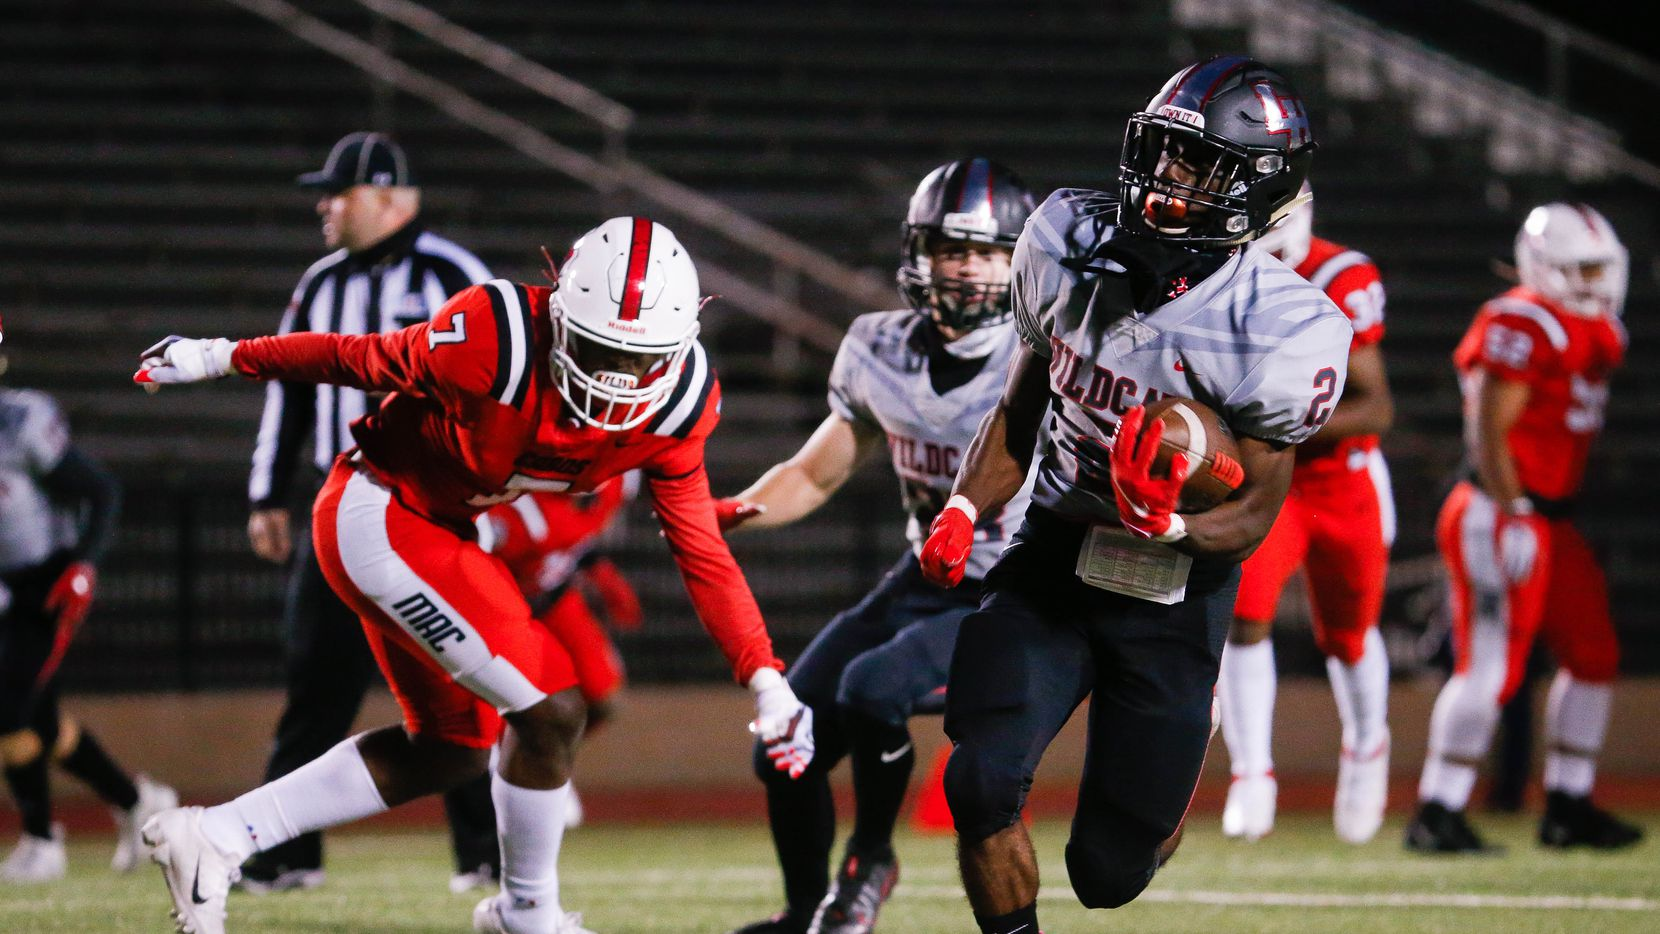 Lake Highlands Noelle Whitehead (2) has rushed for 947 yards and seven touchdowns this season. He averages 7.52 yards per carry.